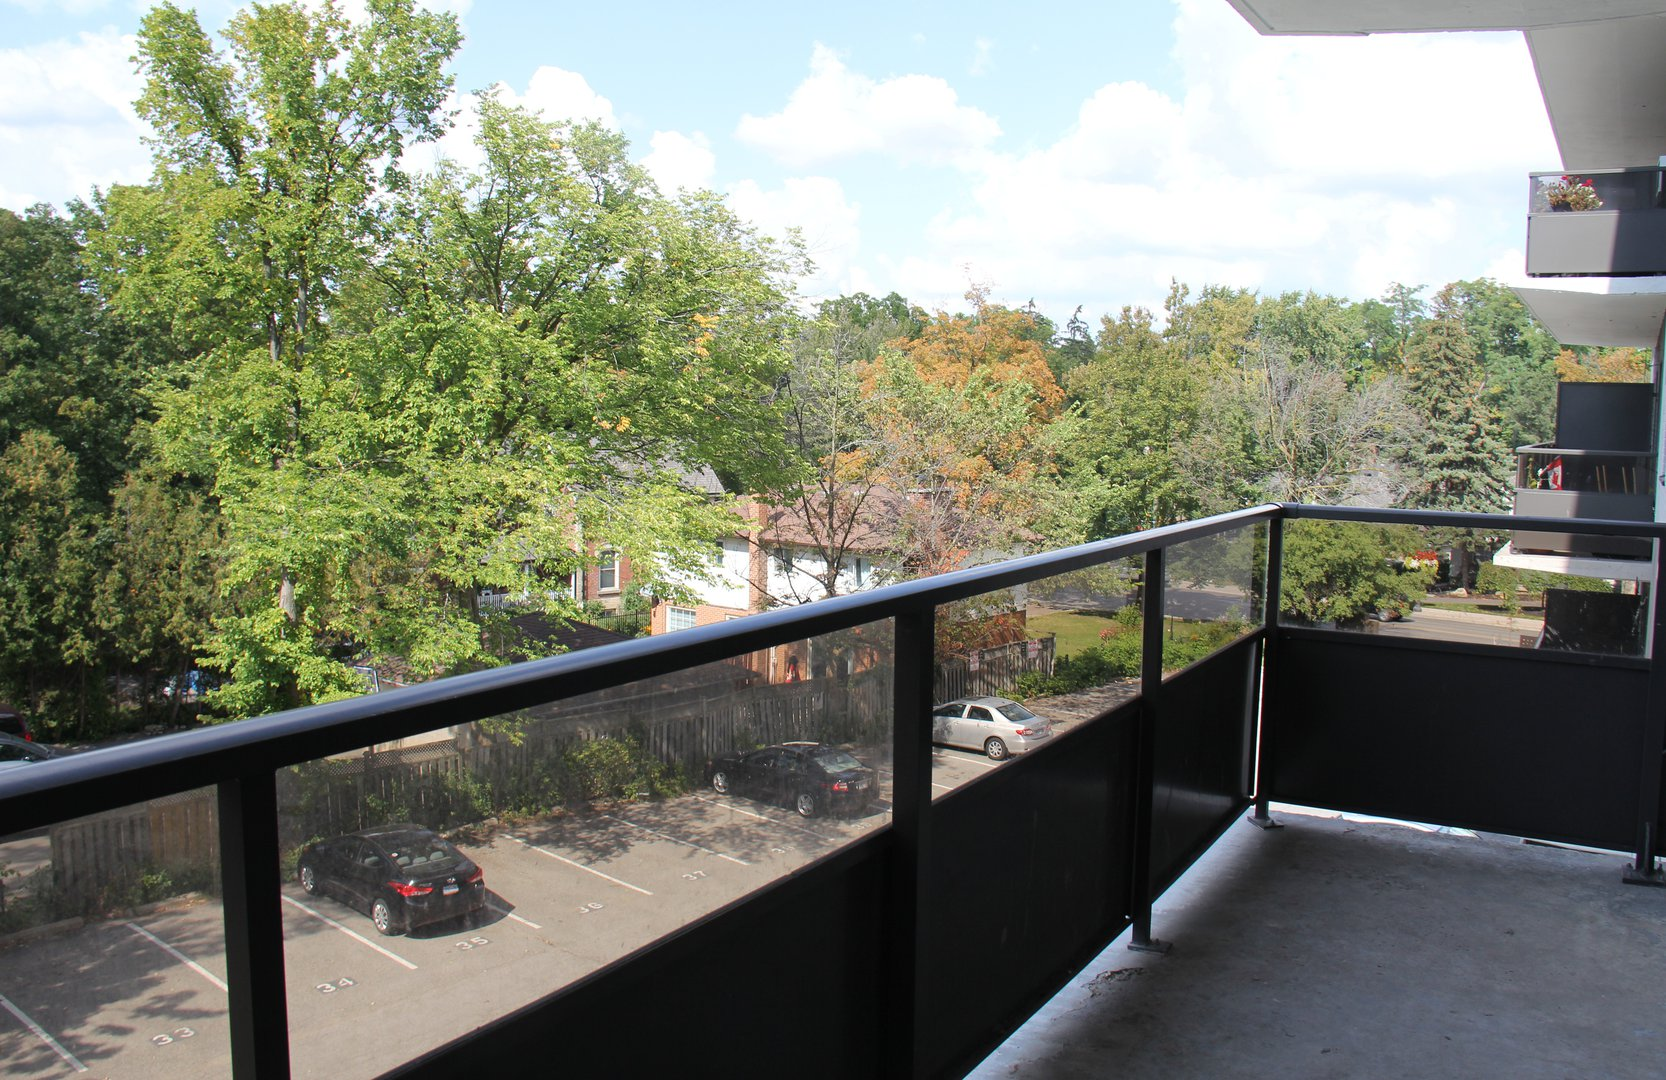 Apartment for rent at 141 Main St S, Brampton, ON. This is the patio terrace.